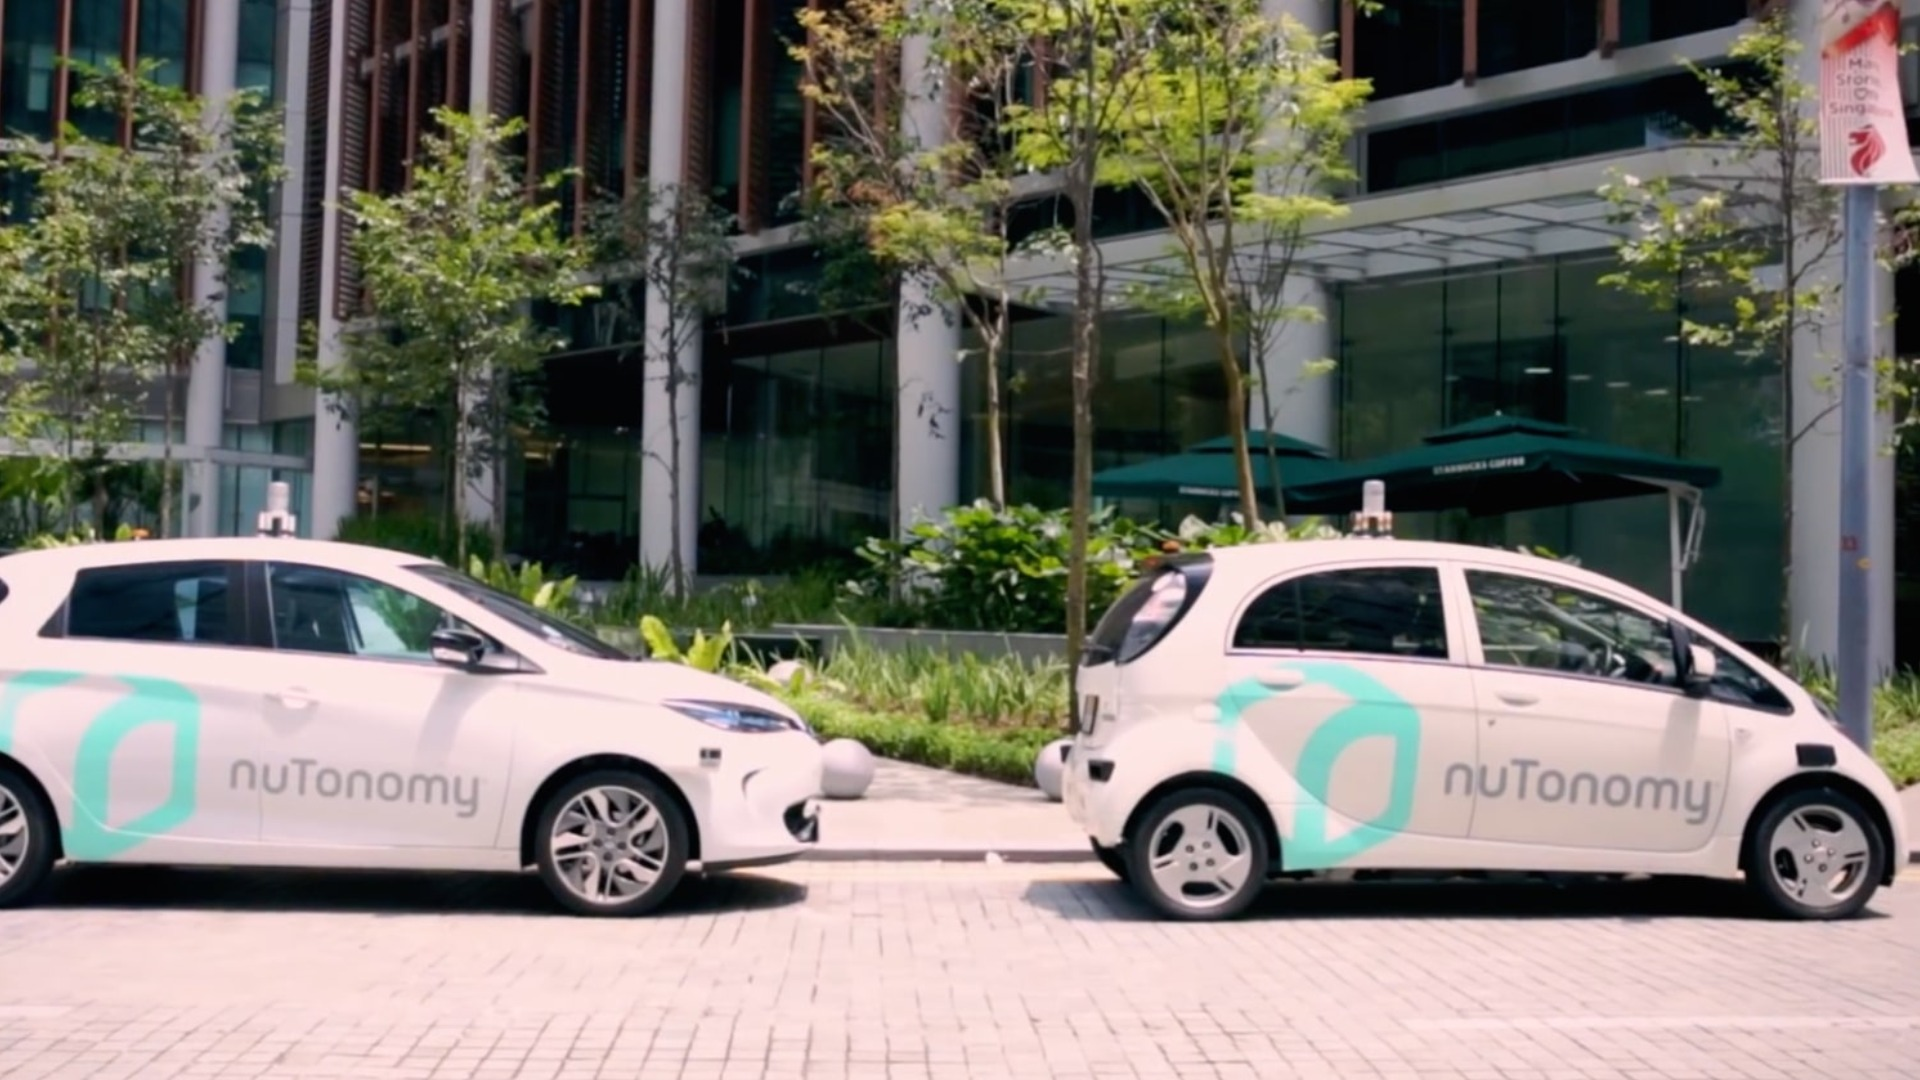 Driverless taxi firm plans to start operations in 10 cities by 2020